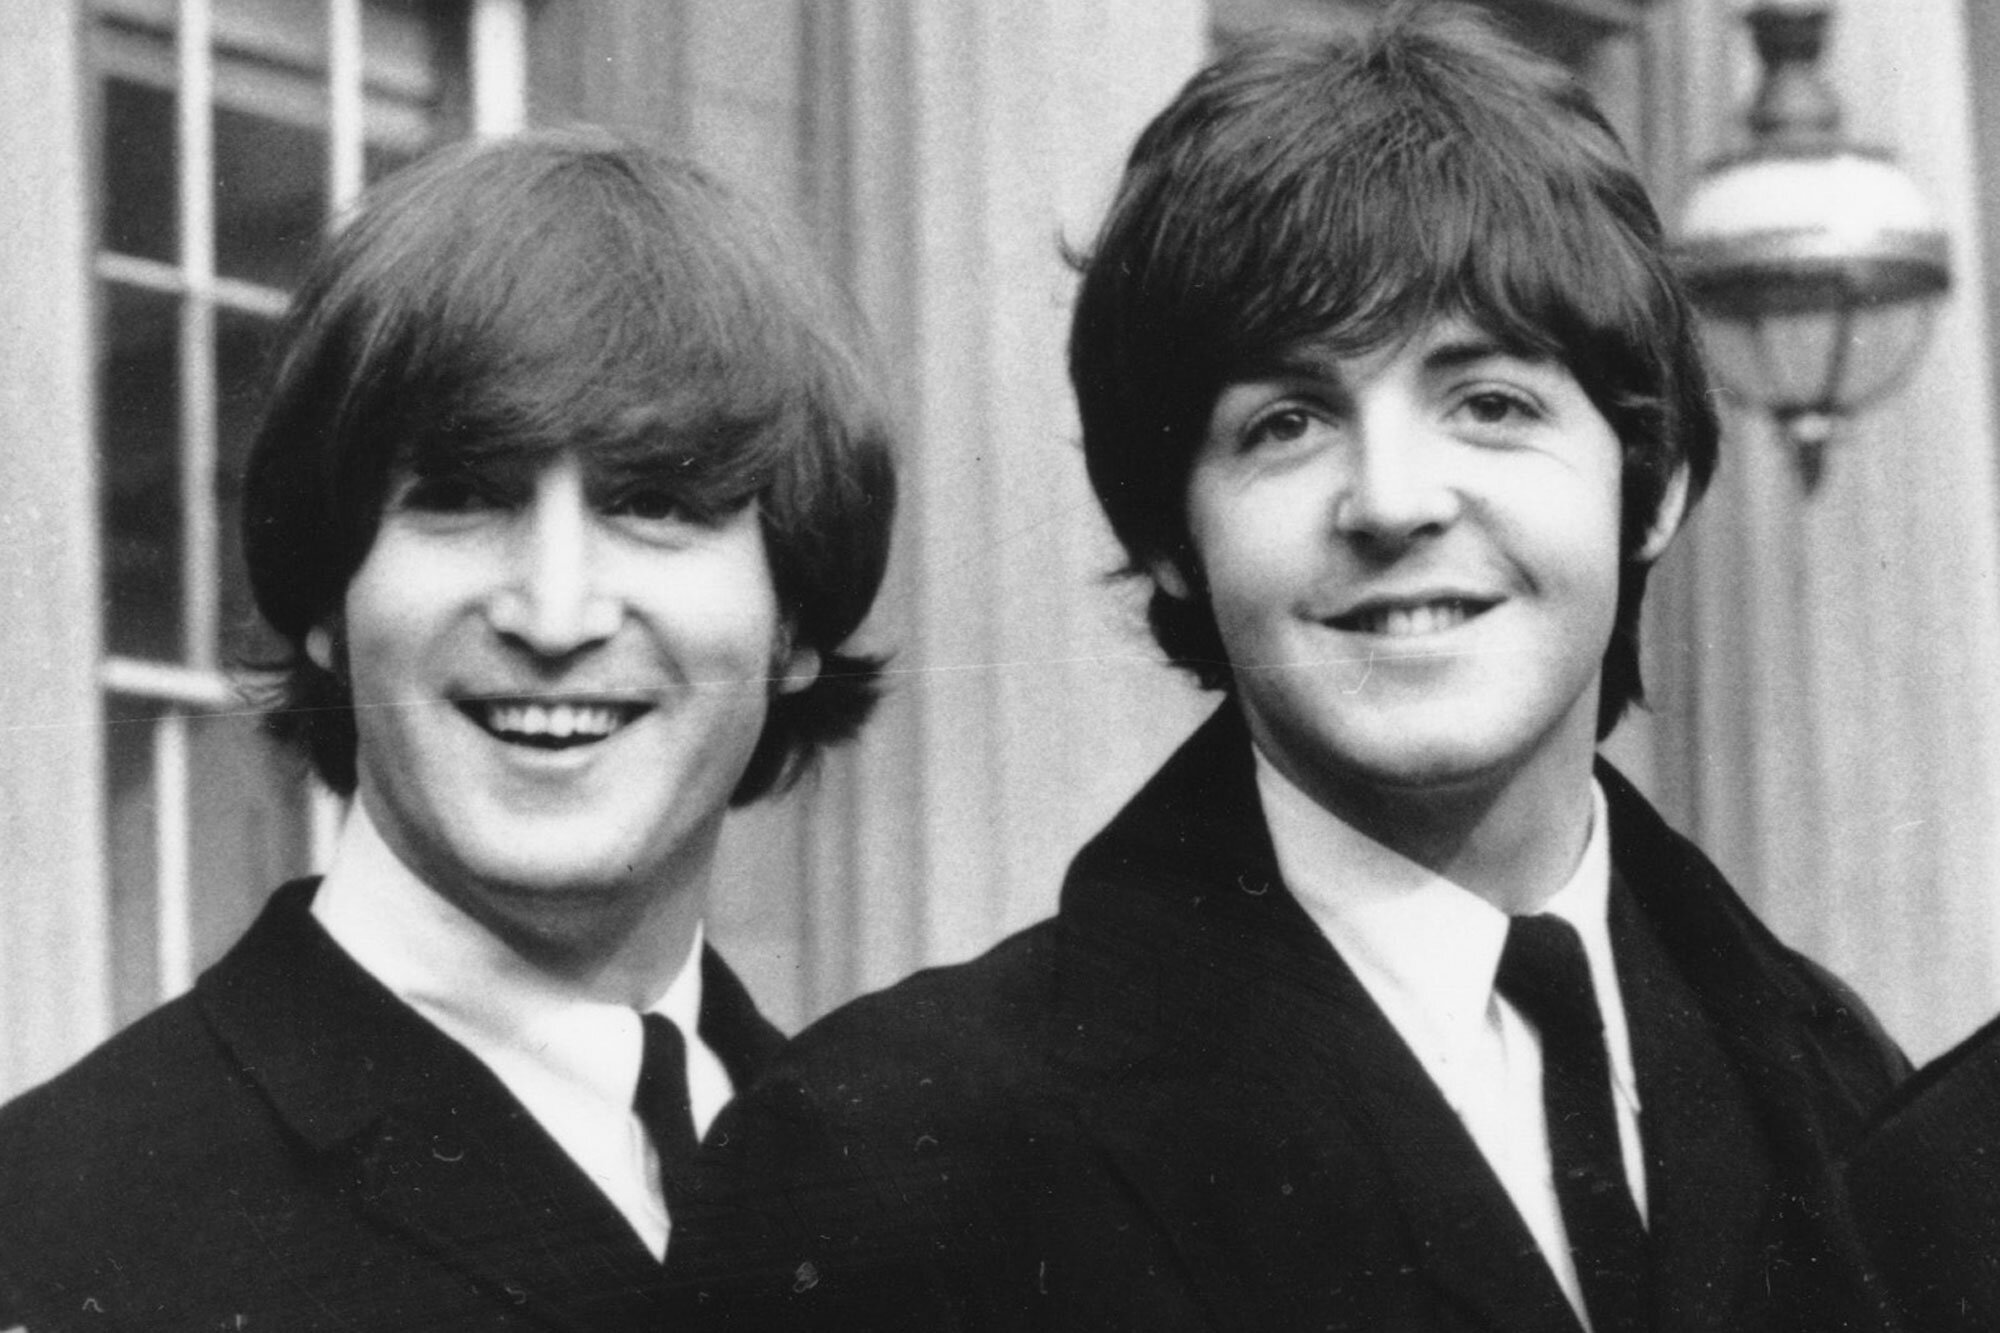 Paul Mccartney Says He Feels Lucky To Have Met John Lennon People Com